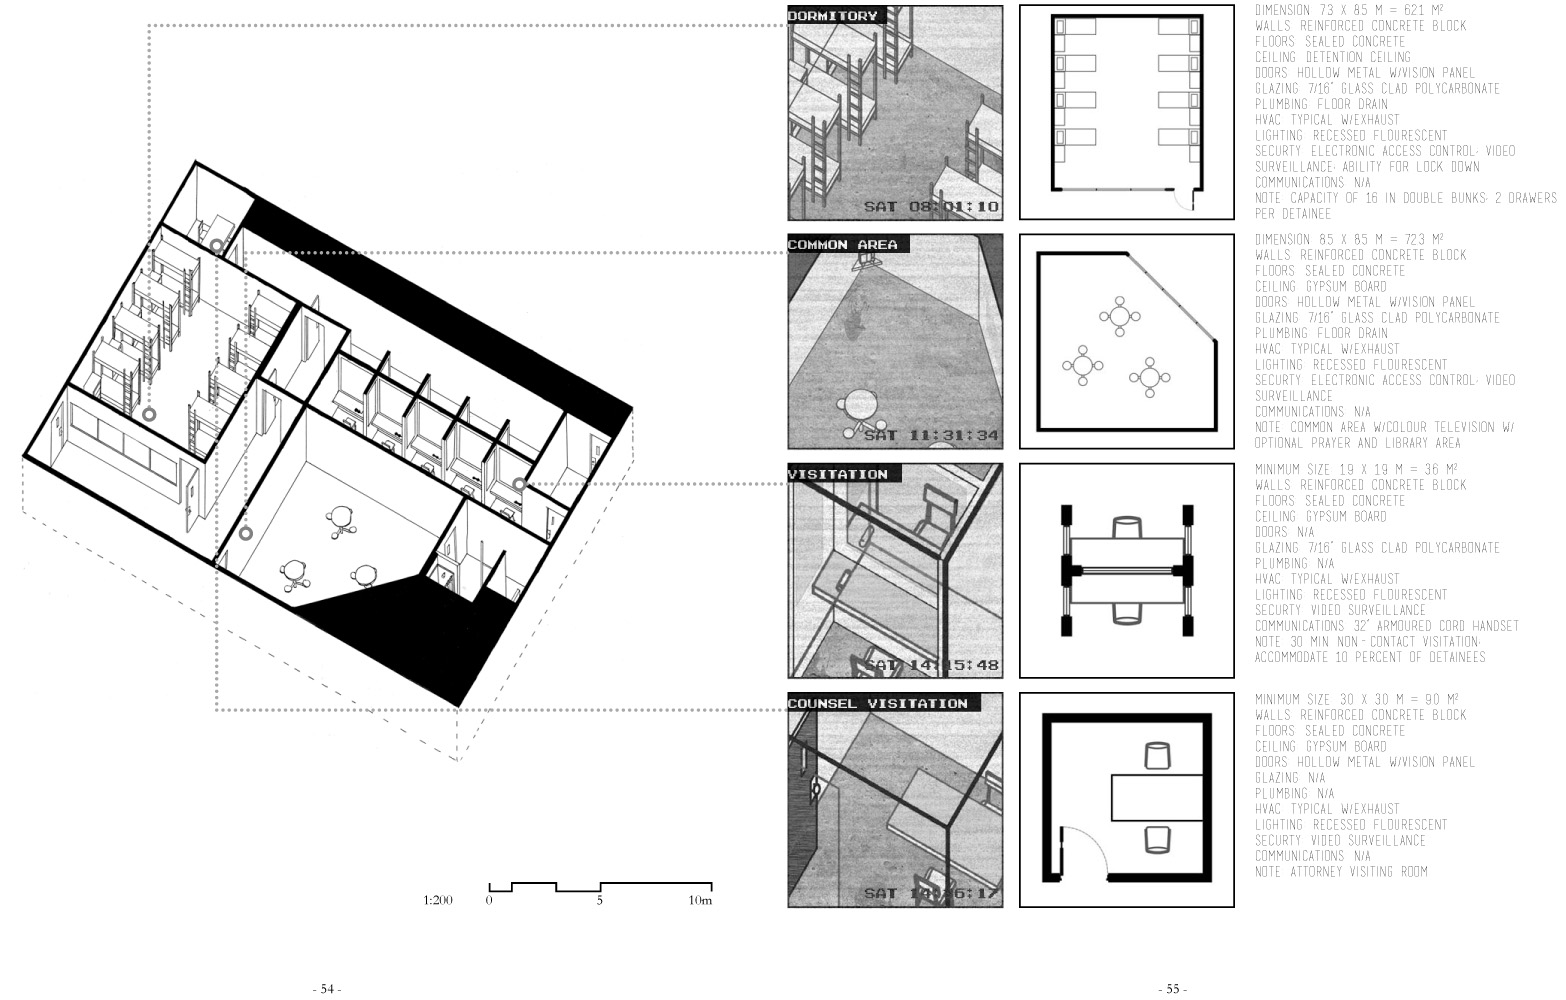 Chak Undocumented The Architecture Of Migrant Detention Draft 31